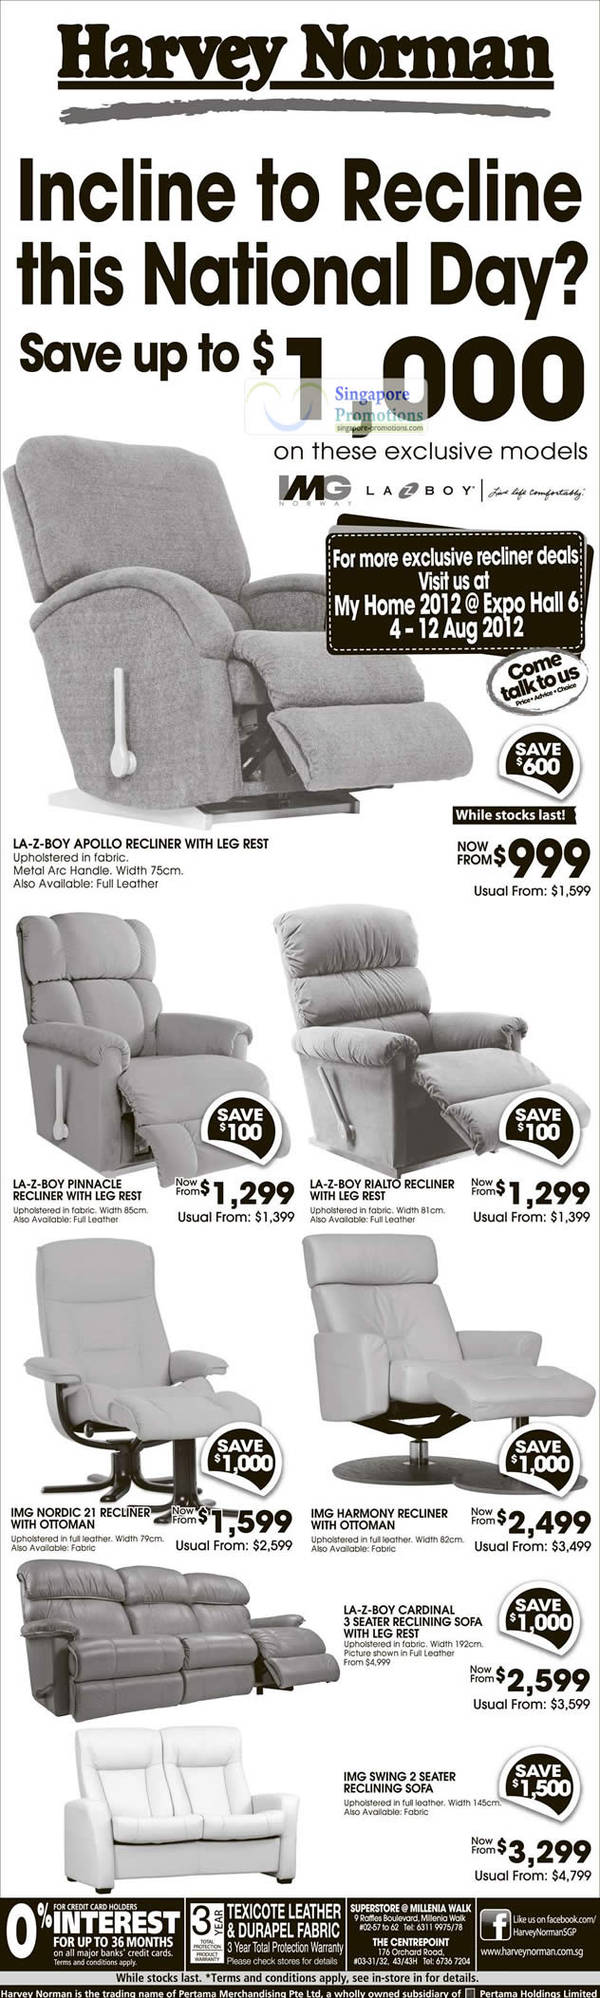 LA-Z-BOY APOLLO RECLINER, LA-Z-BOY PINNACLE RECLINER, LA-Z-BOY RIALTO RECLINER, IMG NORDIC 21 RECLINER, IMG HARMONY RECLINER, LA-Z-BOY CARDINAL 3 SEATER RECLINING Sofa, IMG SWING 2 SEATER RECLINING Sofa